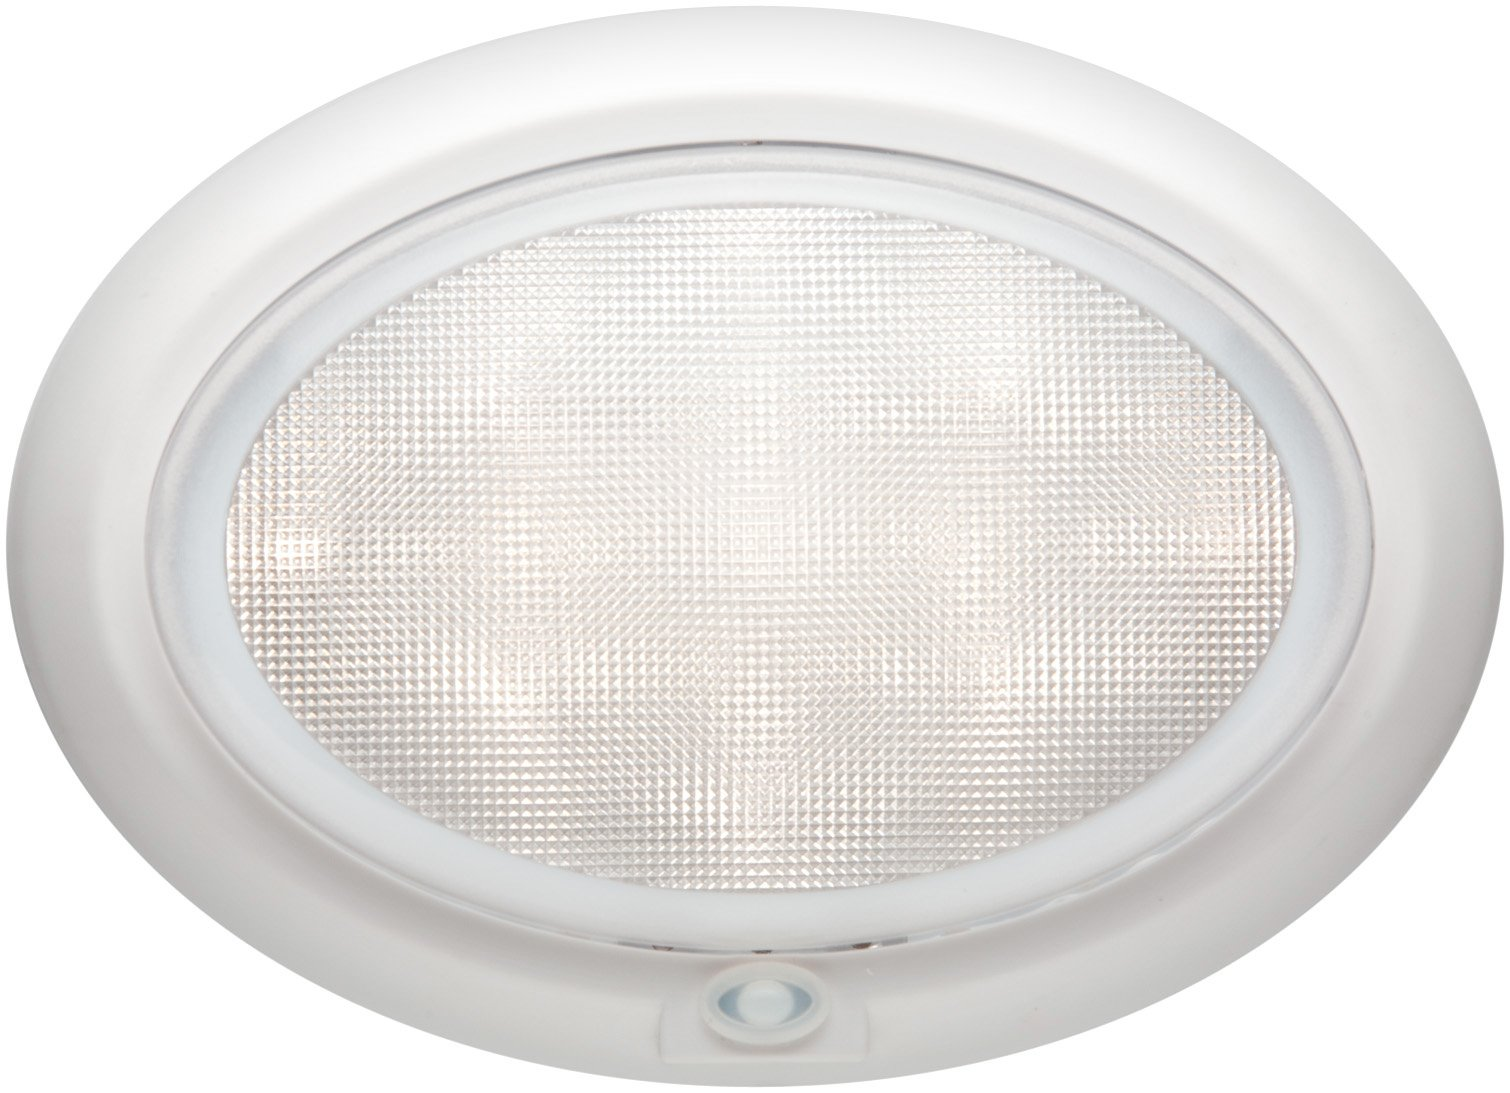 Optronics RVILL39P White LED Interior Light, 0. Fluid_Ounces by Optronics